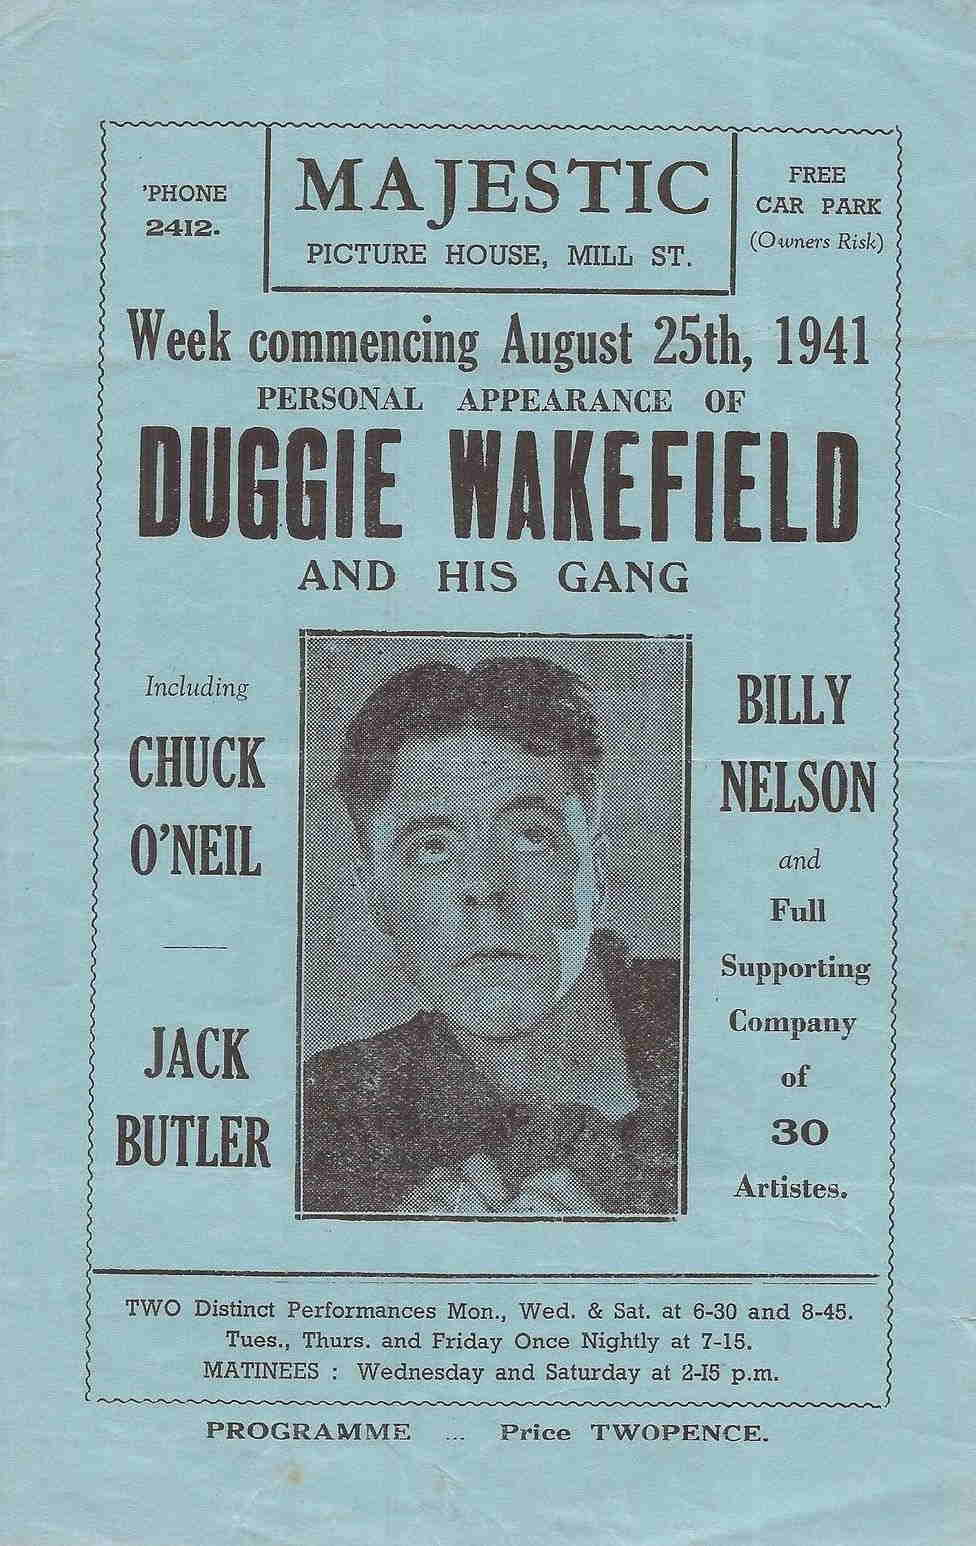 Duggie Wakefireld and His Gang 1941